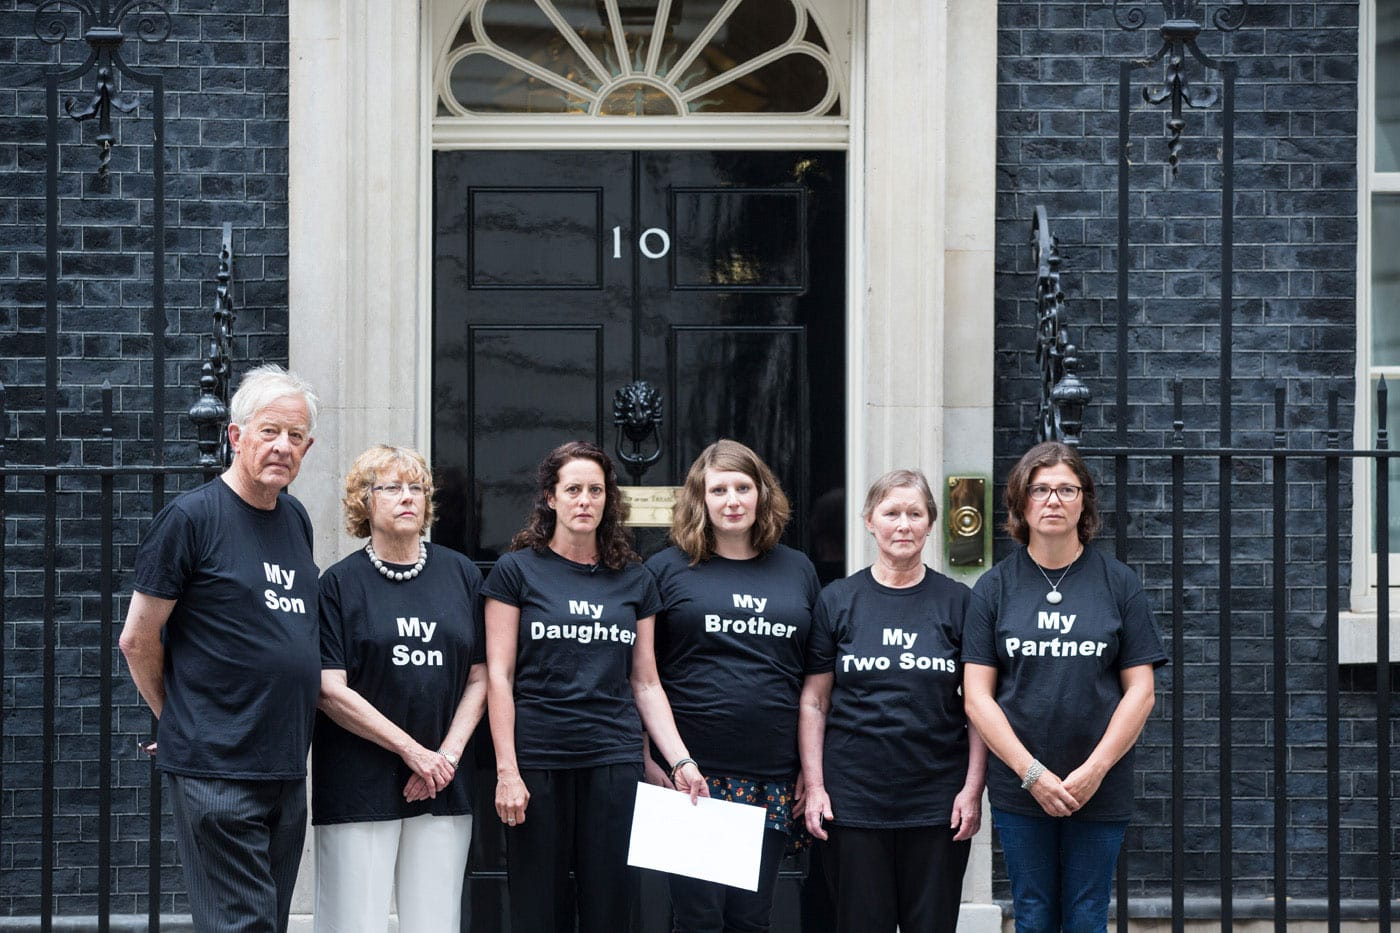 Anyone's Child family members at Downing Street